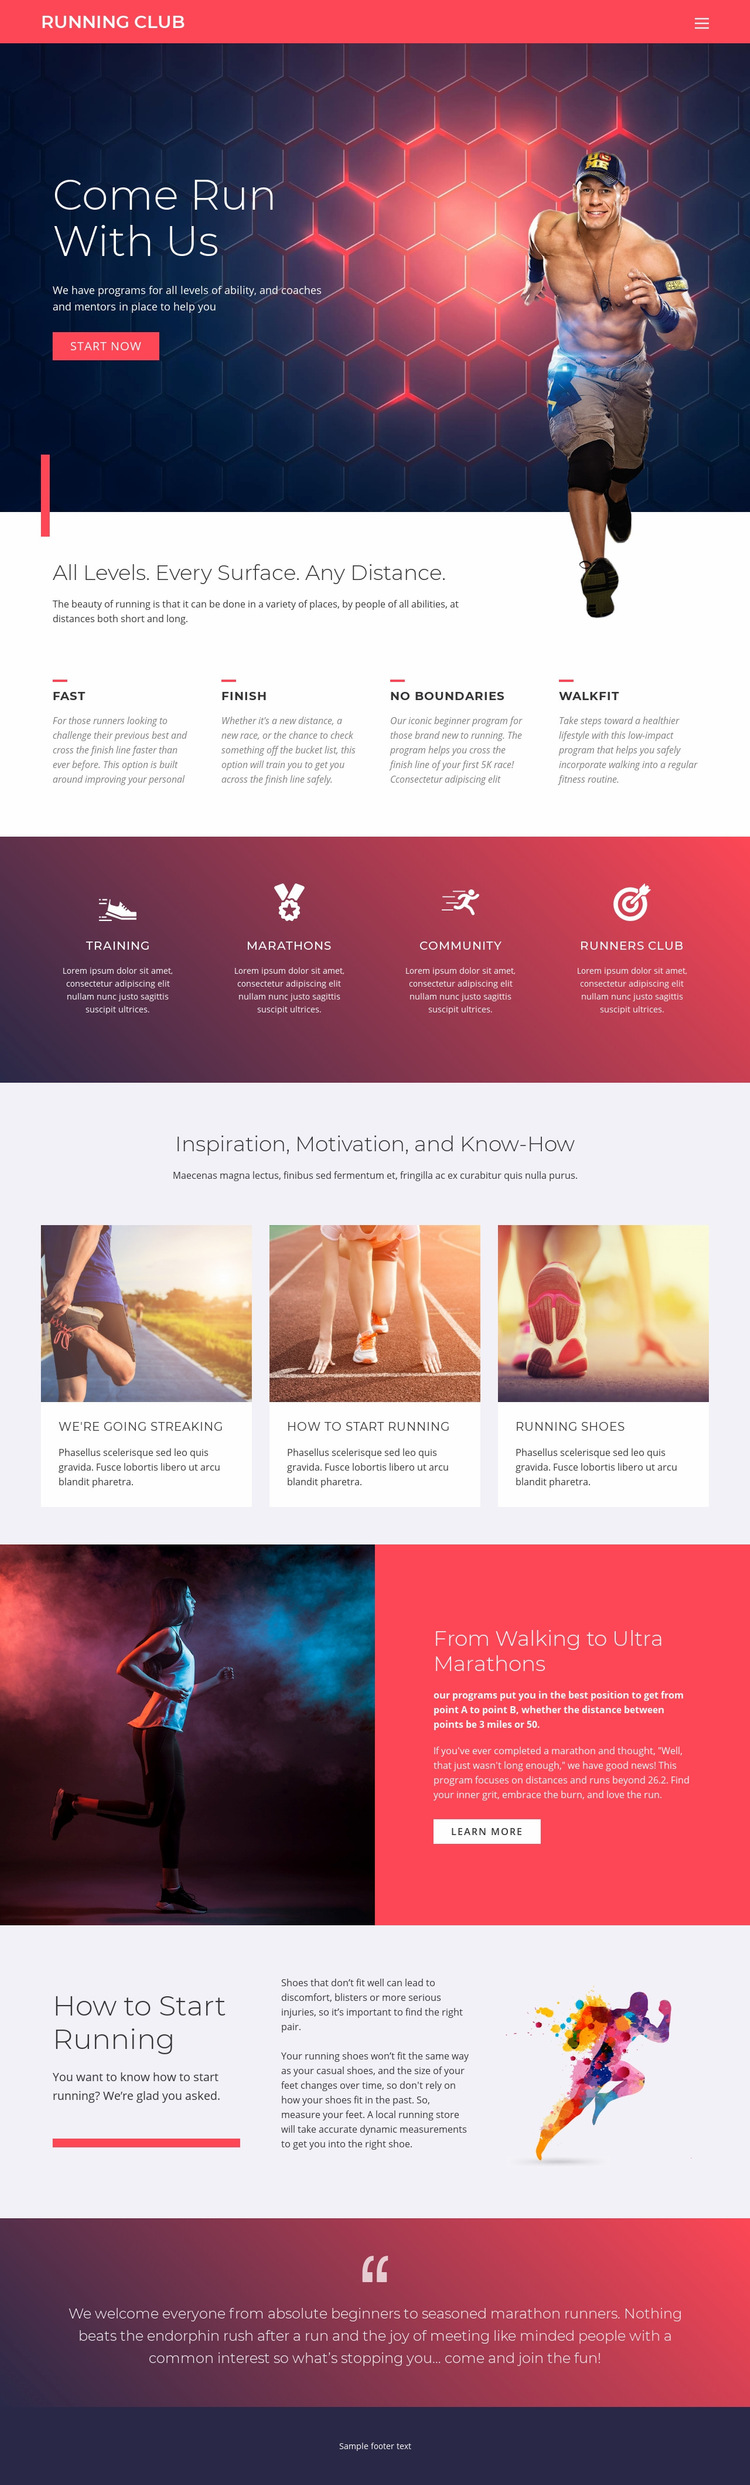 Running and sports Web Page Design